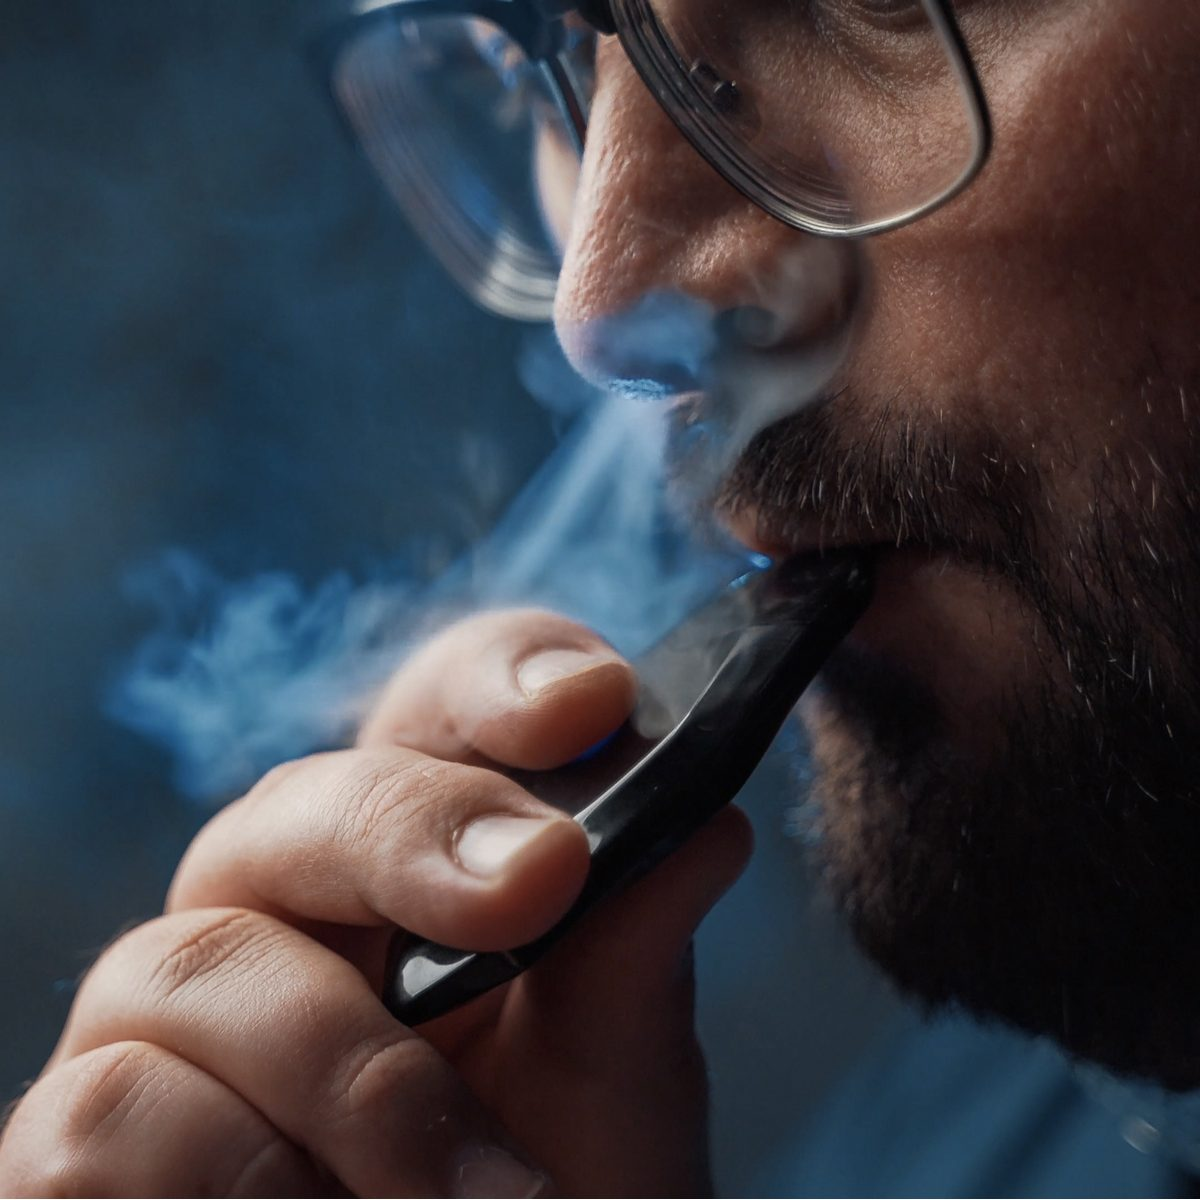 smoking kills but middle aged white guy is vaping